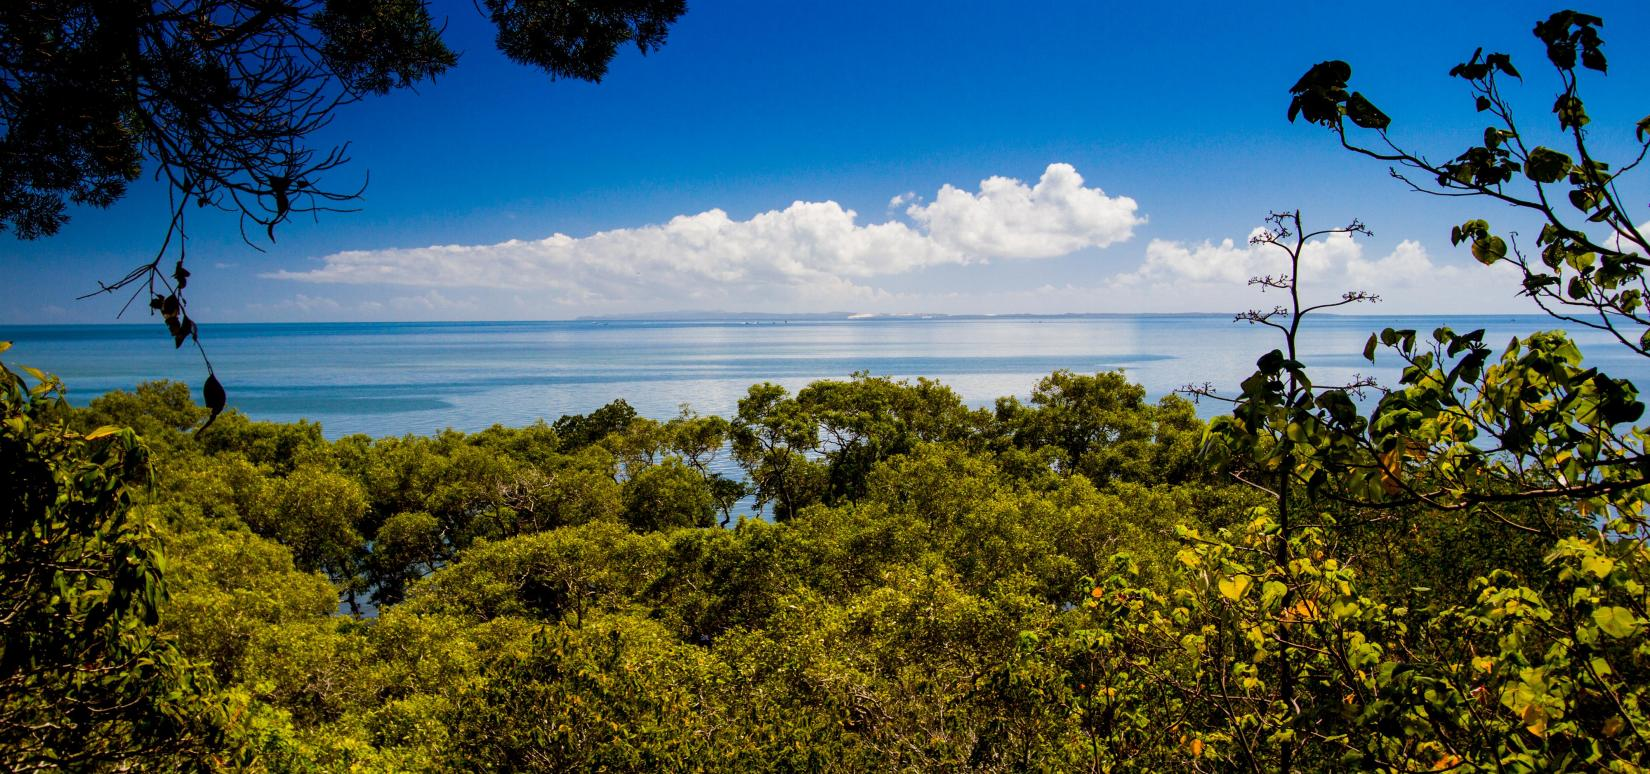 The view north across Moreton Bay to the sand hills of Moreton Island, from Peel Island (Teerk Roo Ra National Park).